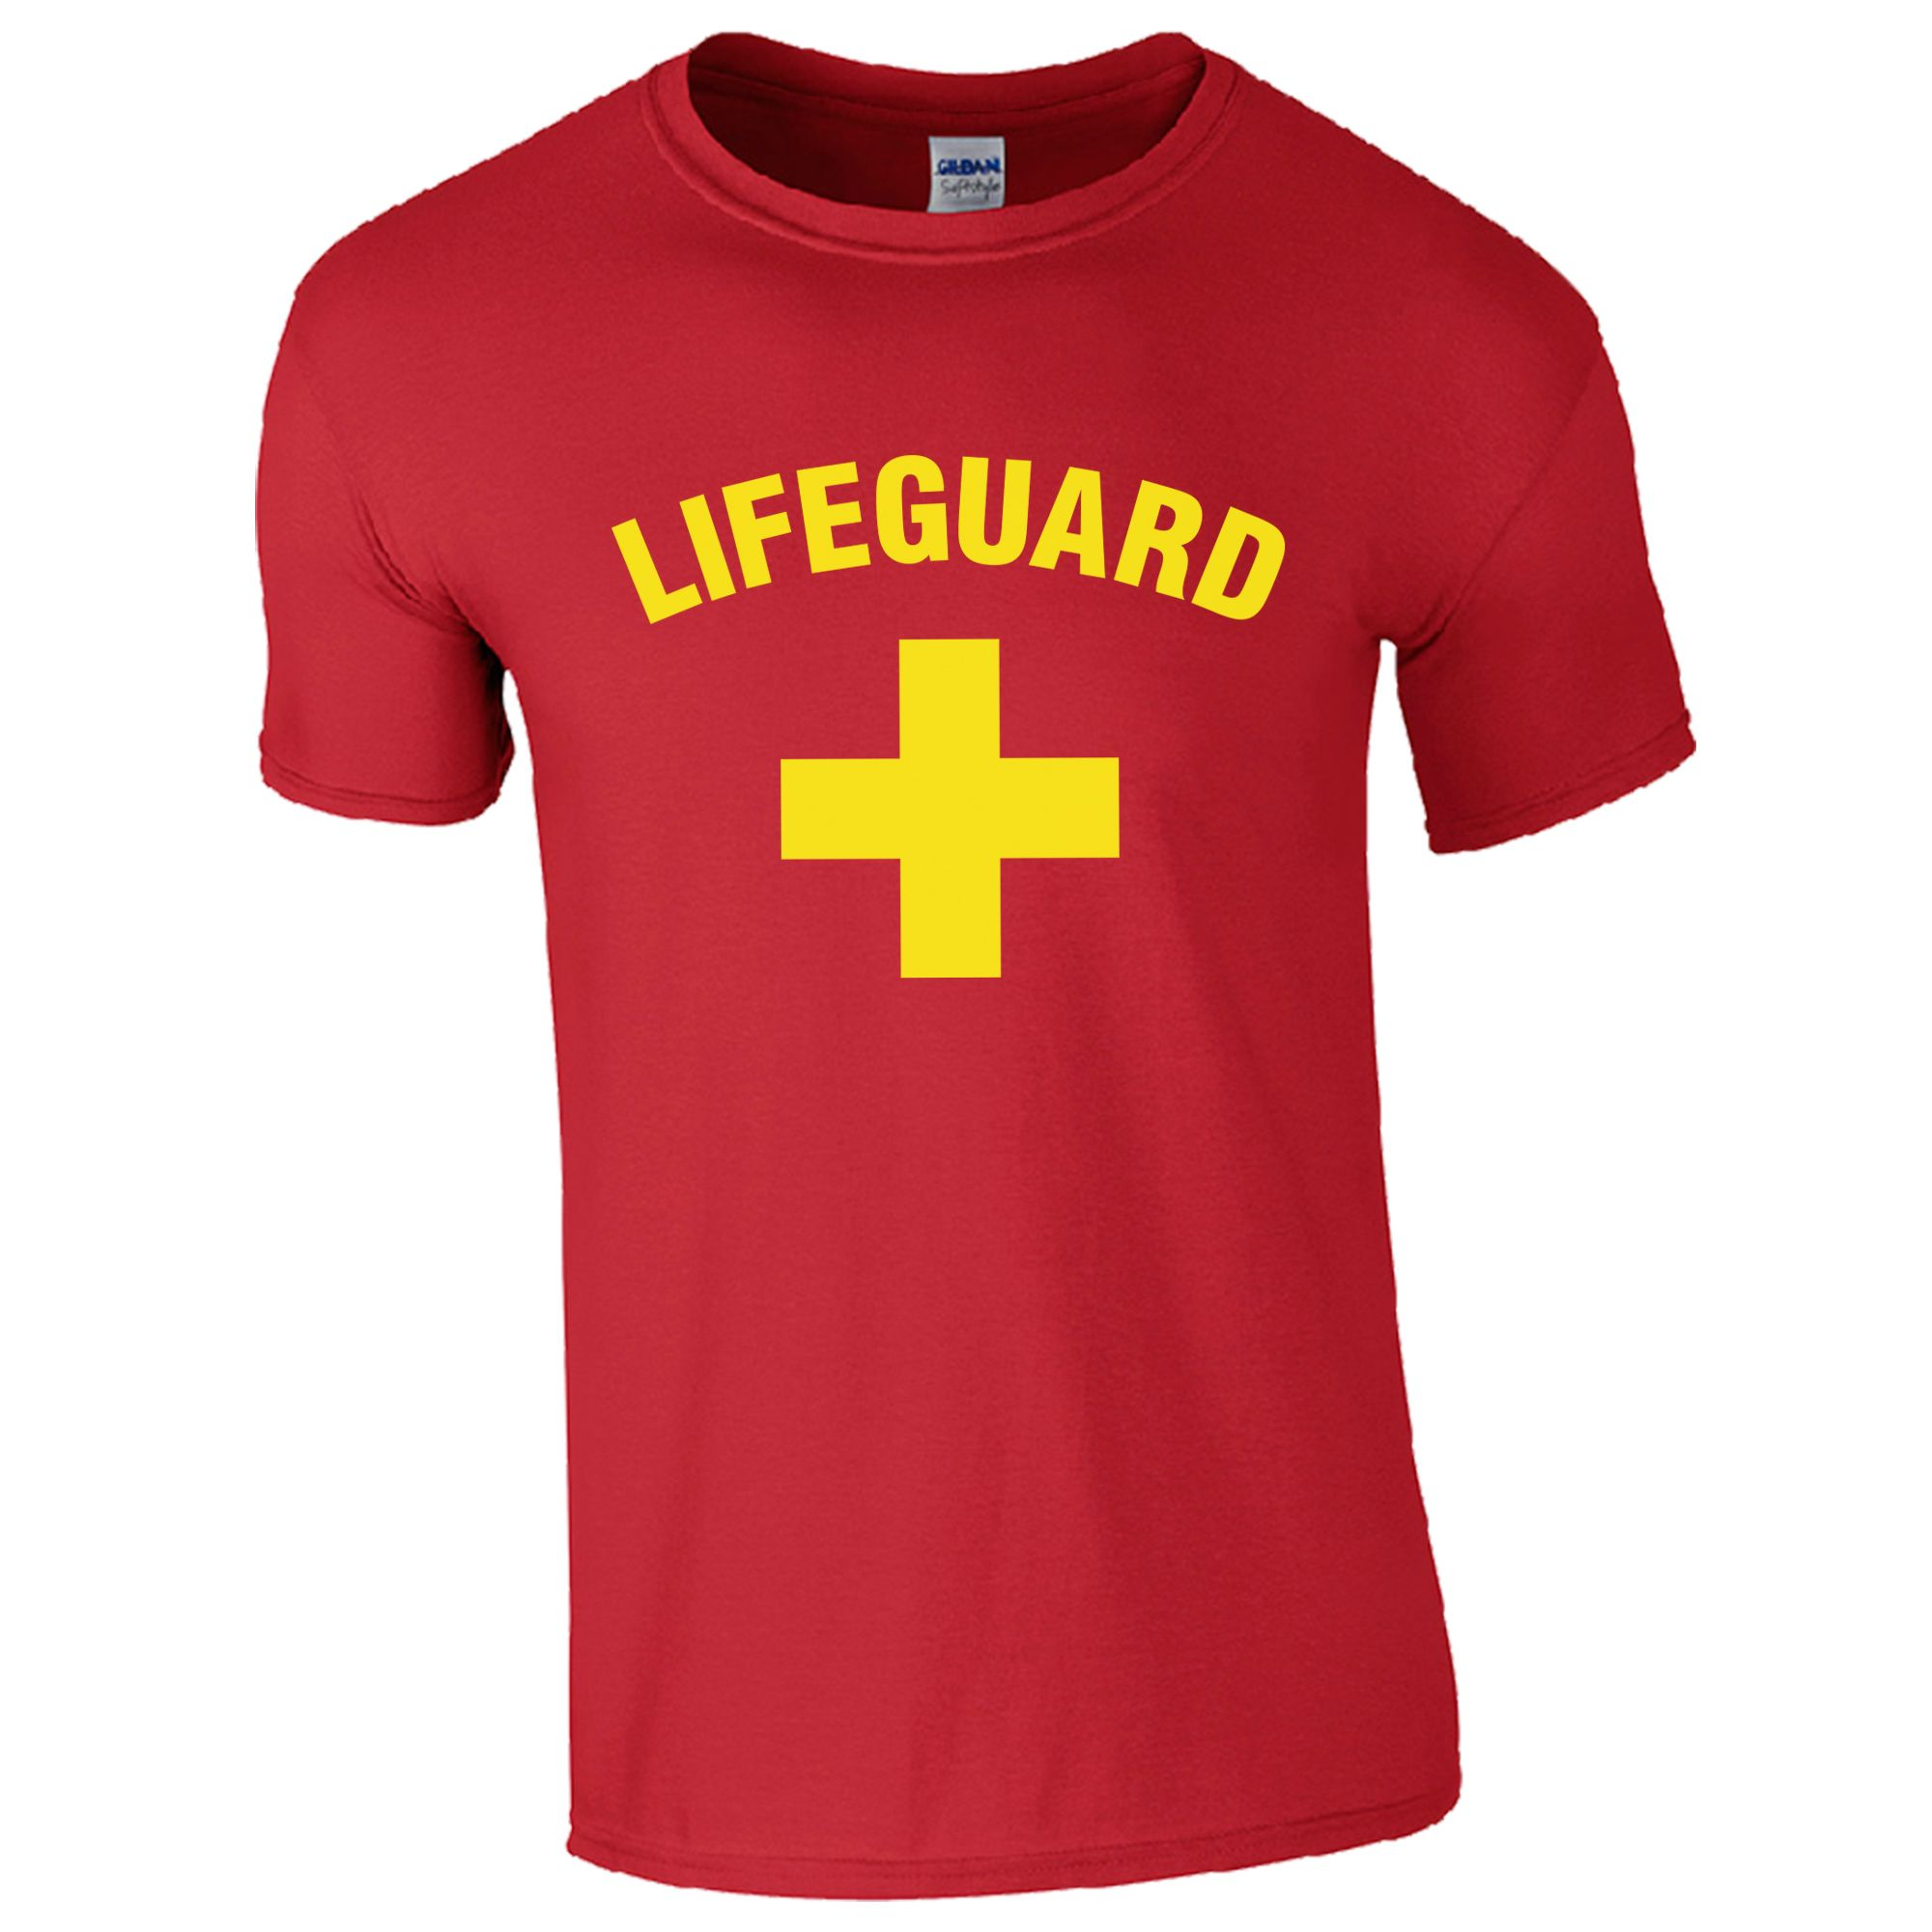 Lifeguard red t shirt for The red t shirt company